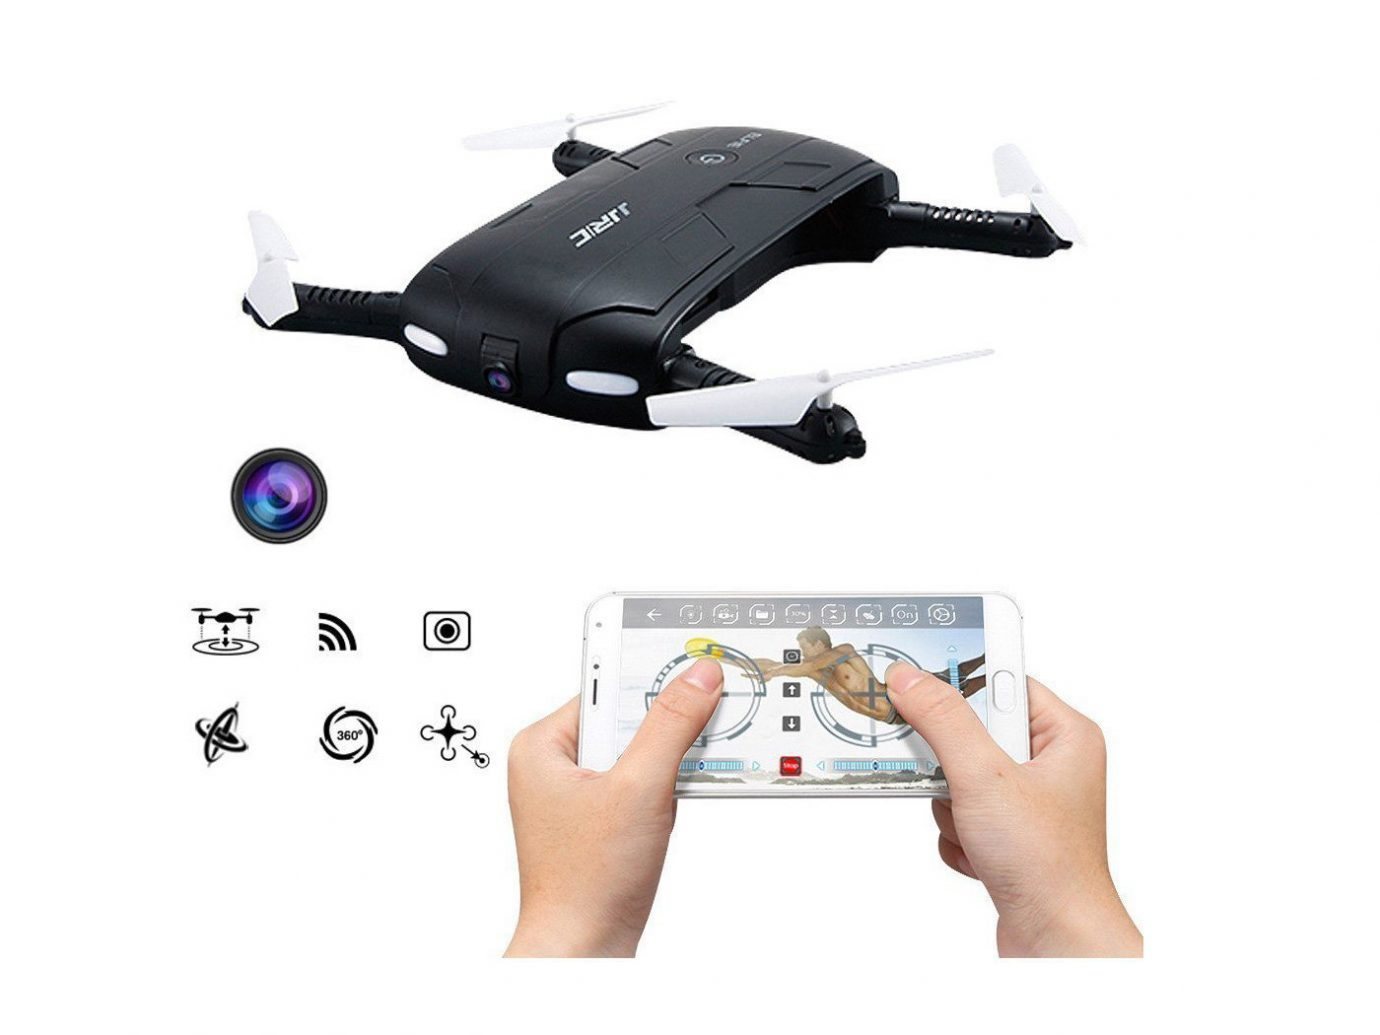 Travel Shop Travel Tech Travel Tips sky automotive exterior helicopter multimedia hand technology finger aircraft